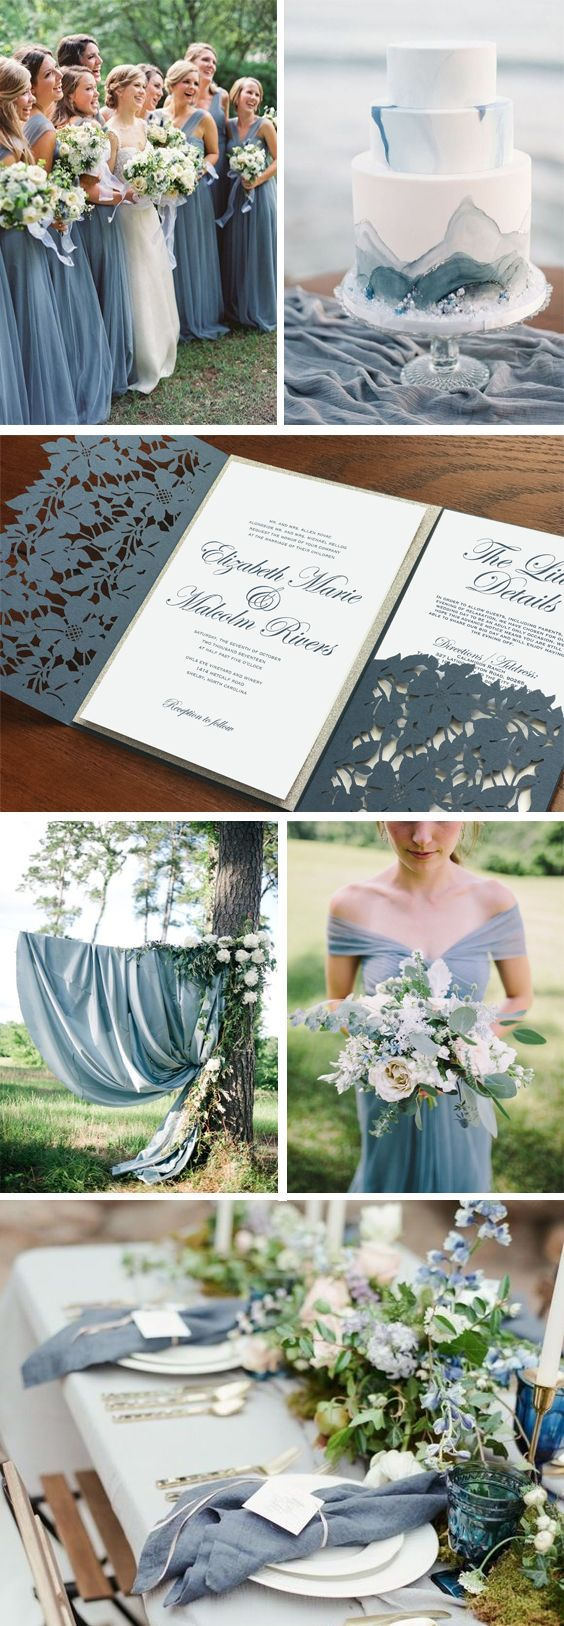 Dusty blue wedding palette. Dusty blue wedding invitations. Dusty blue bouquet. Slate blue wedding cake. Dusty blue bridesmaids dresses. Summer wedding. Spring wedding. Outdoor wedding. Elegant wedding. Fall wedding. Pocket fold invitations. Blue and silver wedding Romantic wedding. Invitations by Unica Forma